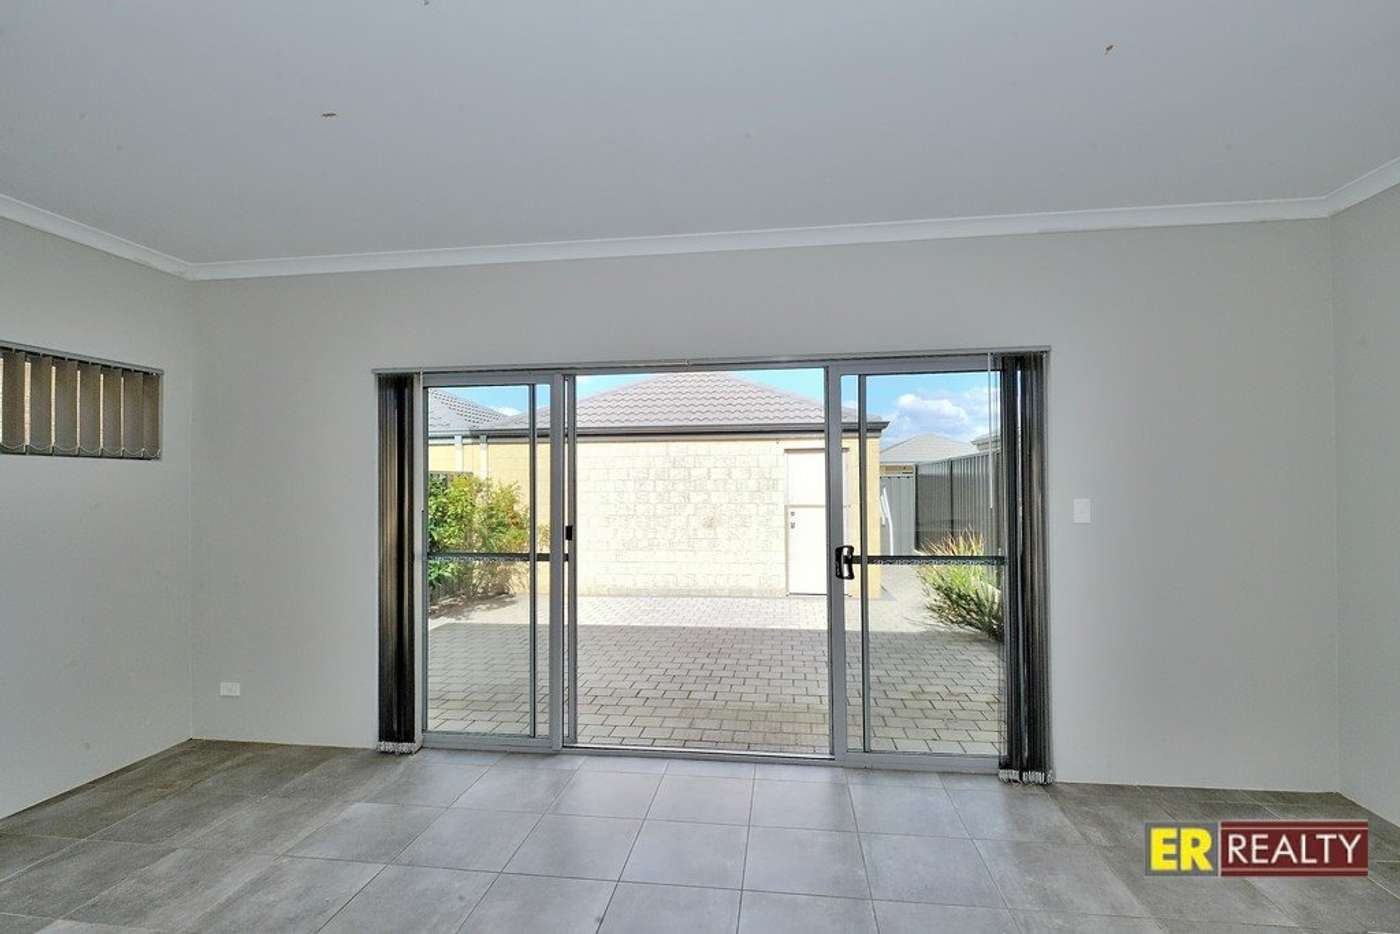 Seventh view of Homely house listing, 217 Suffolk Street, Caversham WA 6055